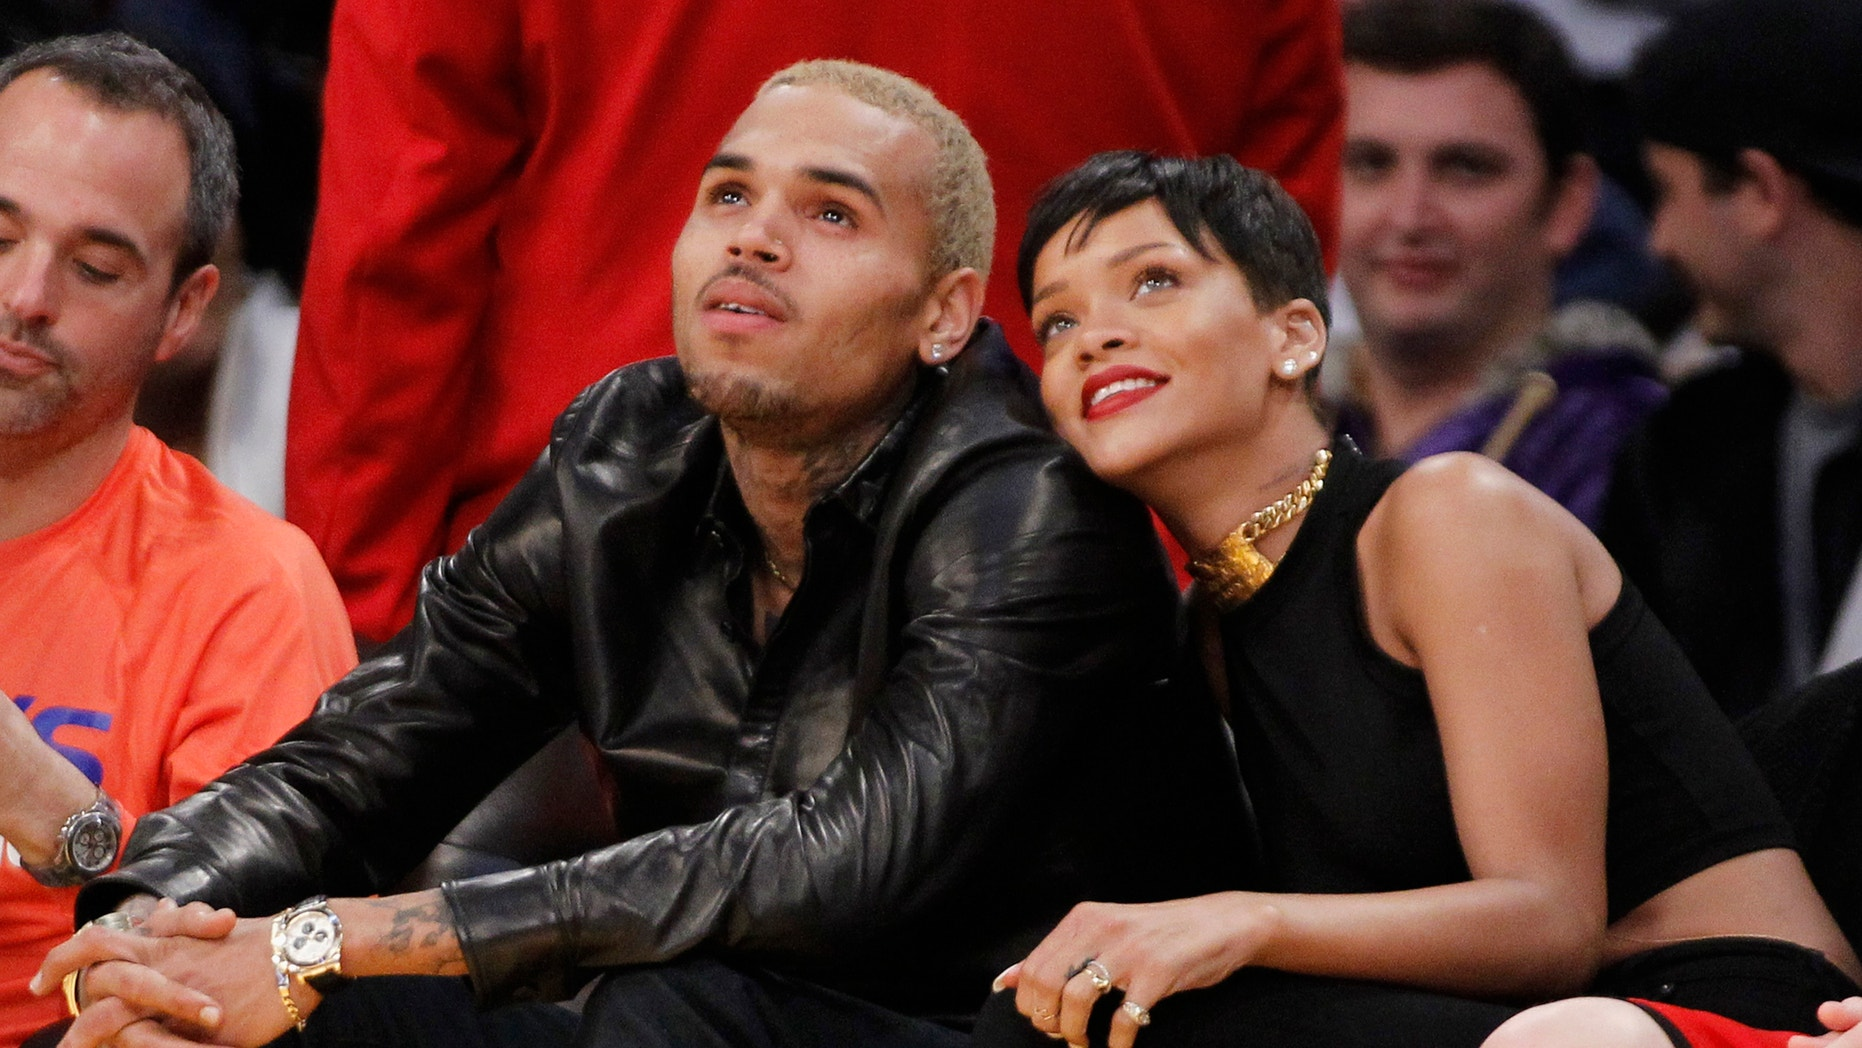 Chris Brown and Rihanna on Christmas, 2012.